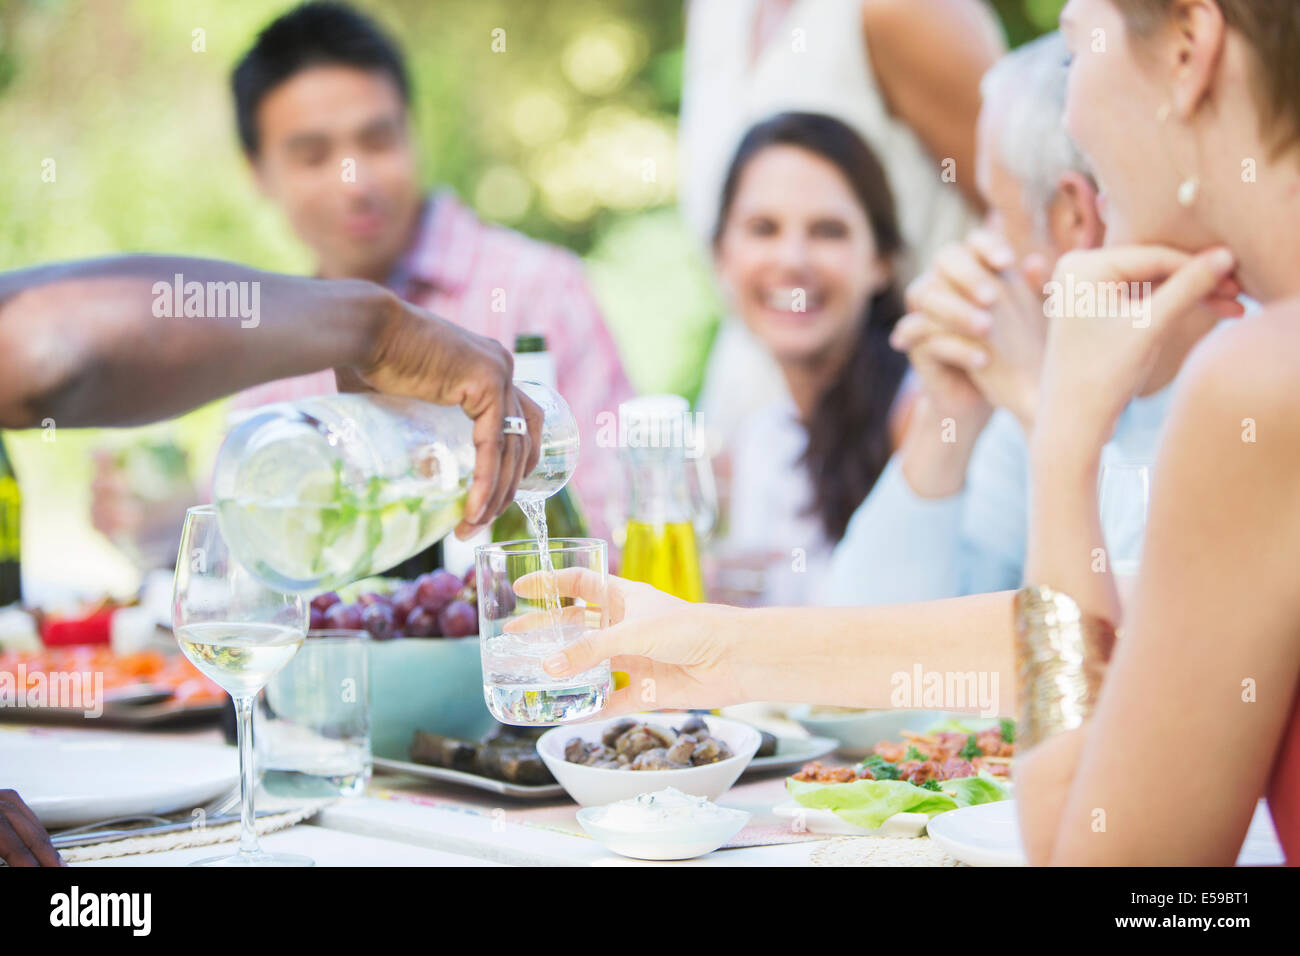 Friends eating together outdoors - Stock Image